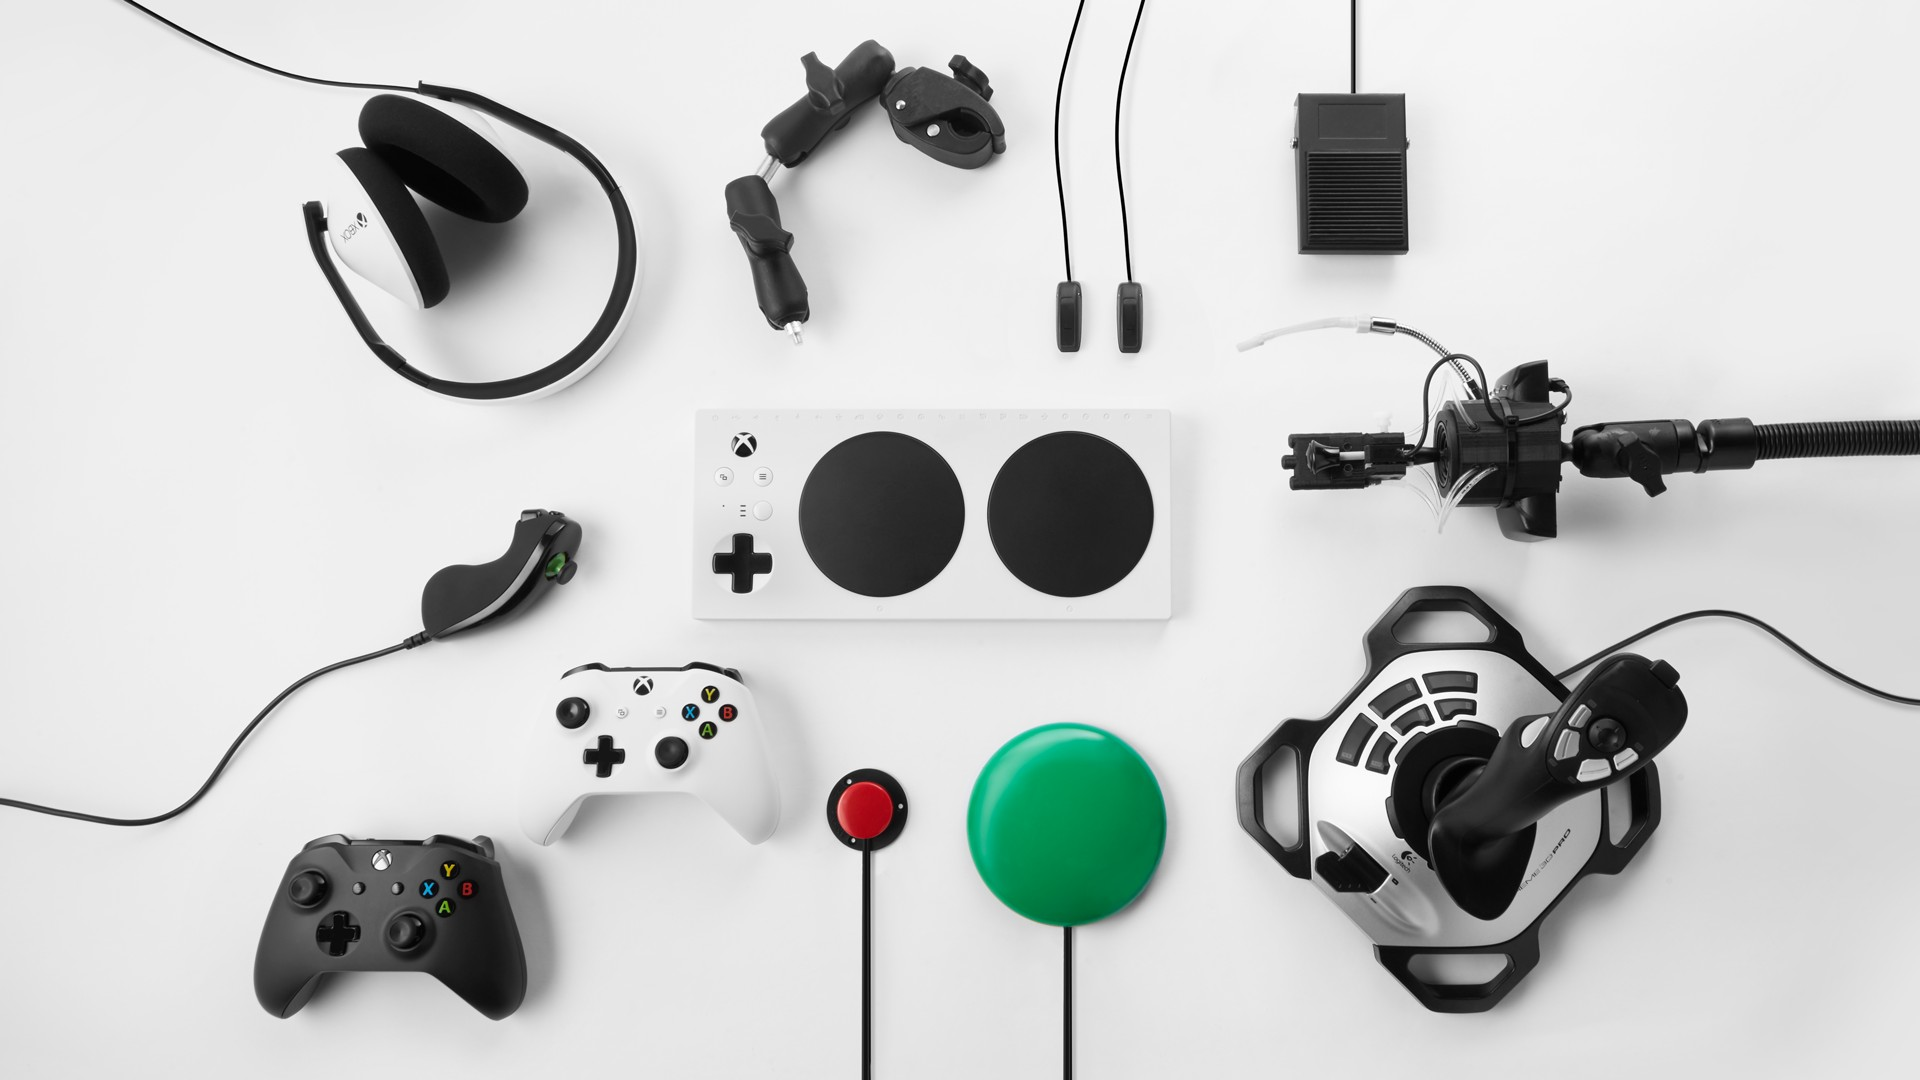 Unlike Sony, Microsoft confirms that 'all' Xbox One controllers will work on Series X screenshot